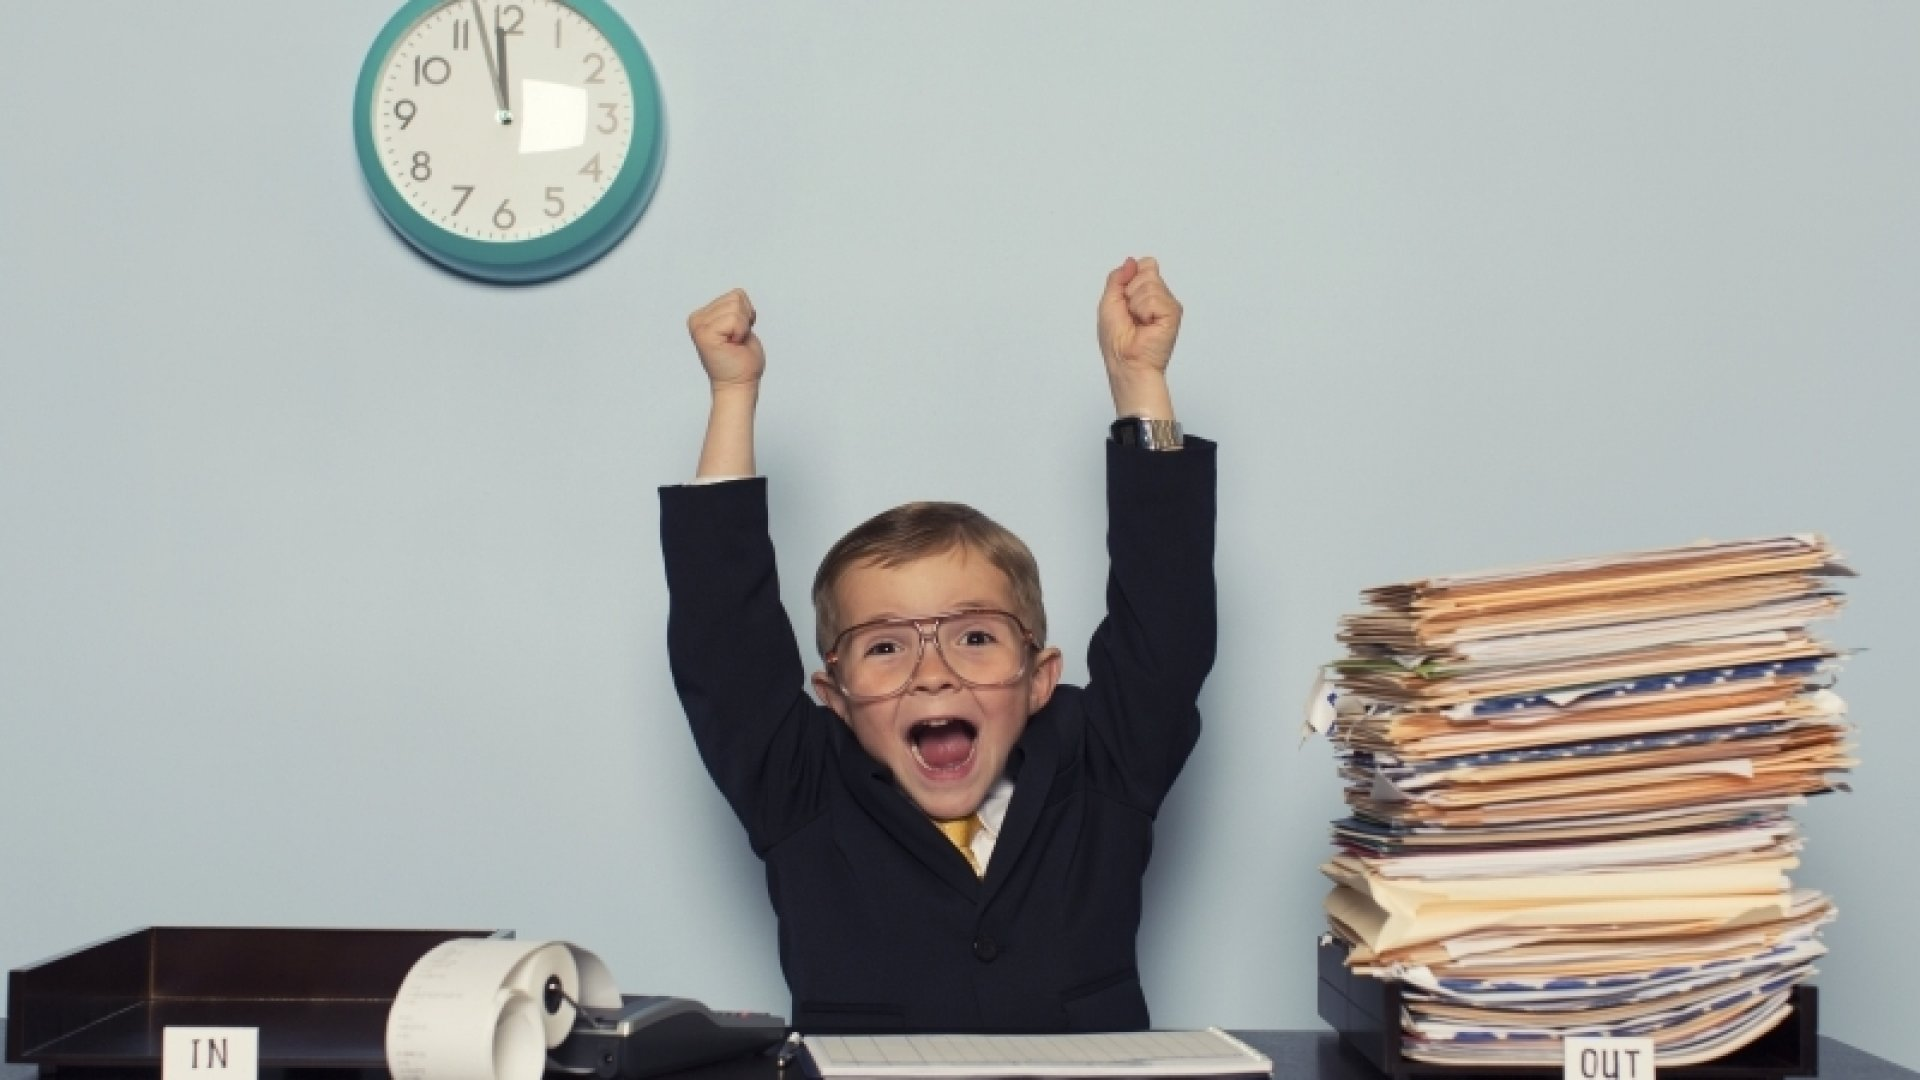 7 Ways to Speed Up Your Productivity